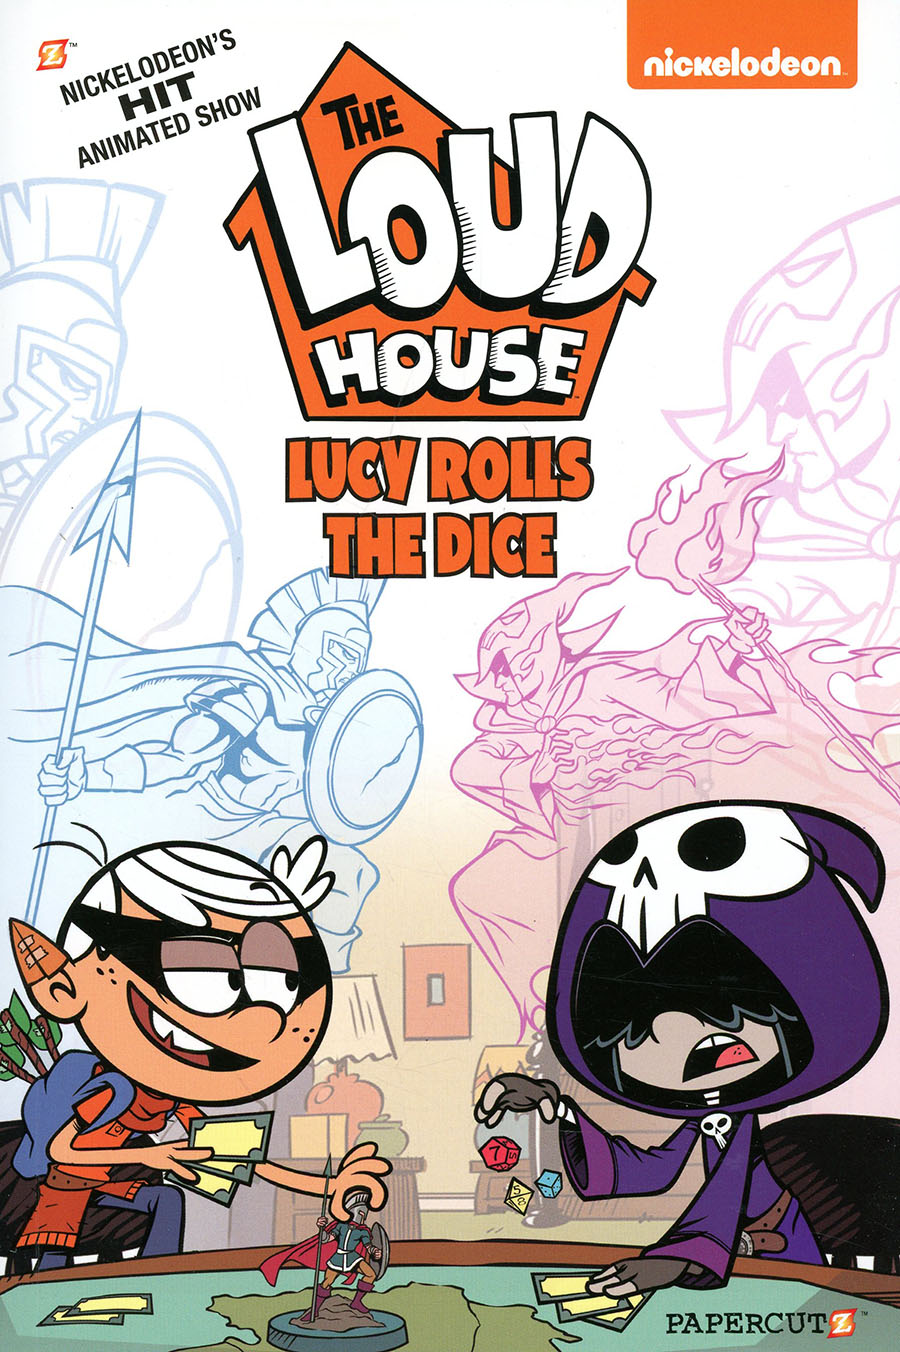 Loud House Vol 13 Lucy Rolls The Dice TP